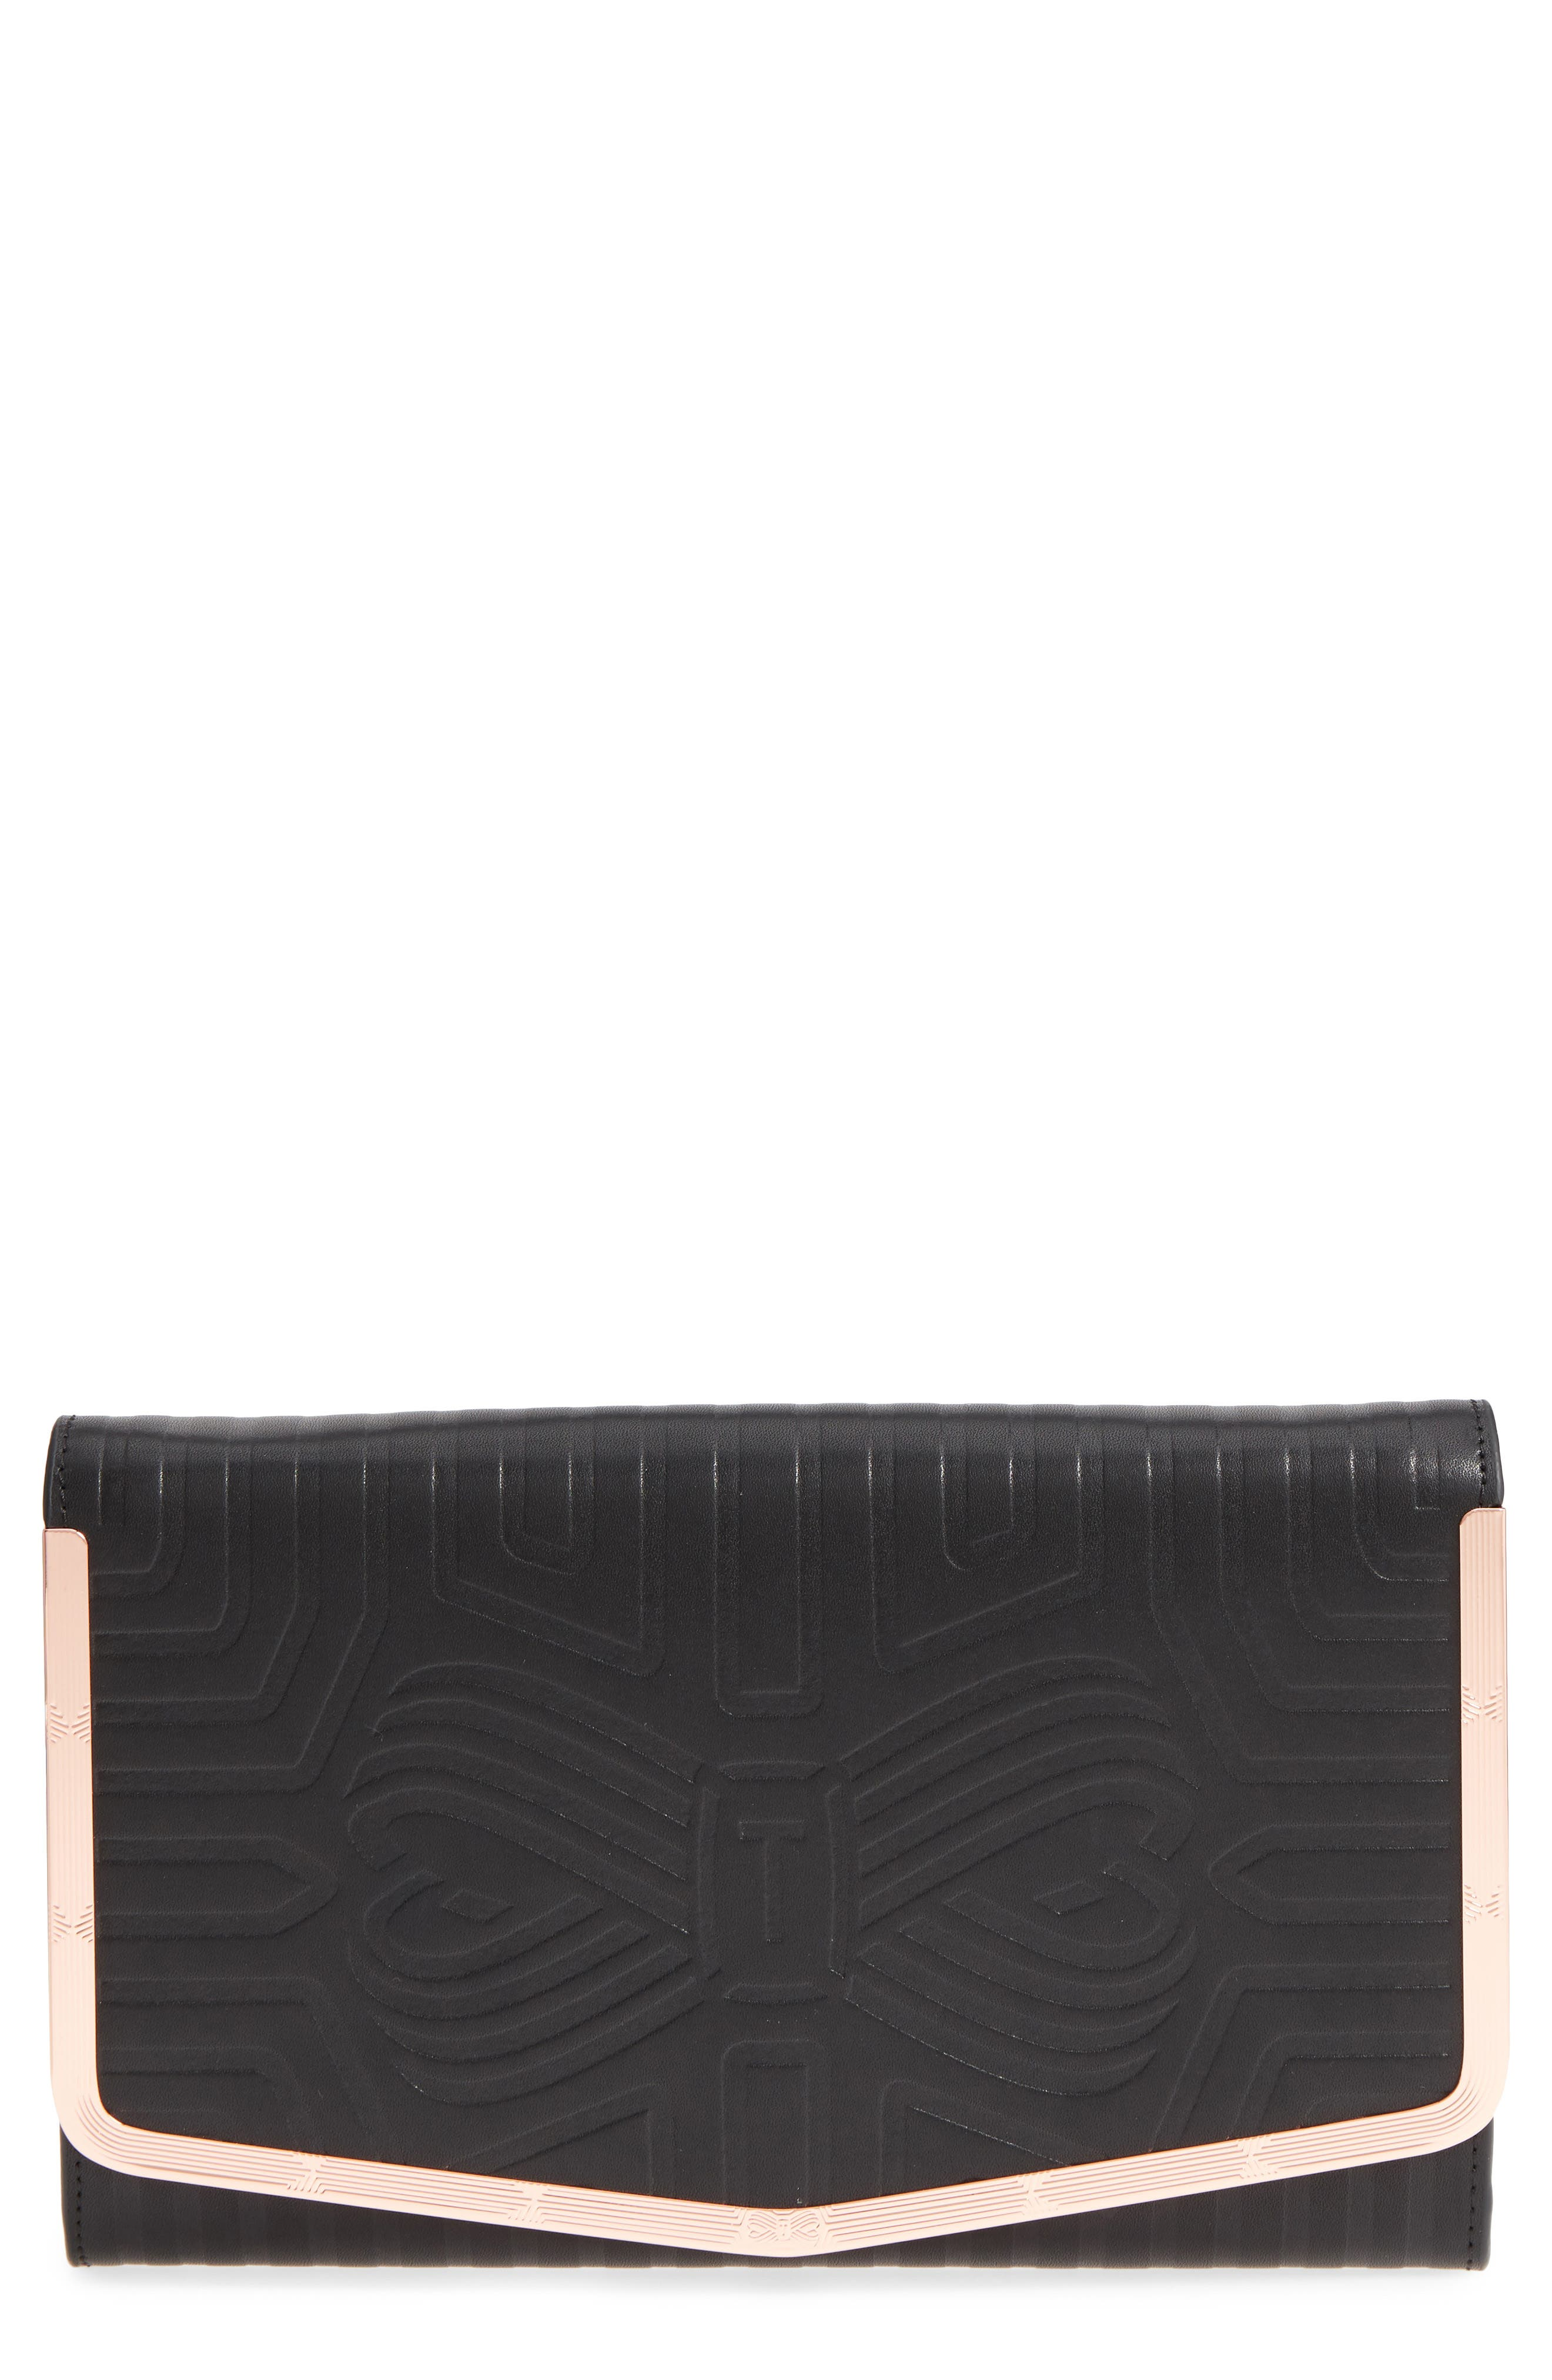 Jenaa Embossed Bow Leather Clutch,                             Main thumbnail 1, color,